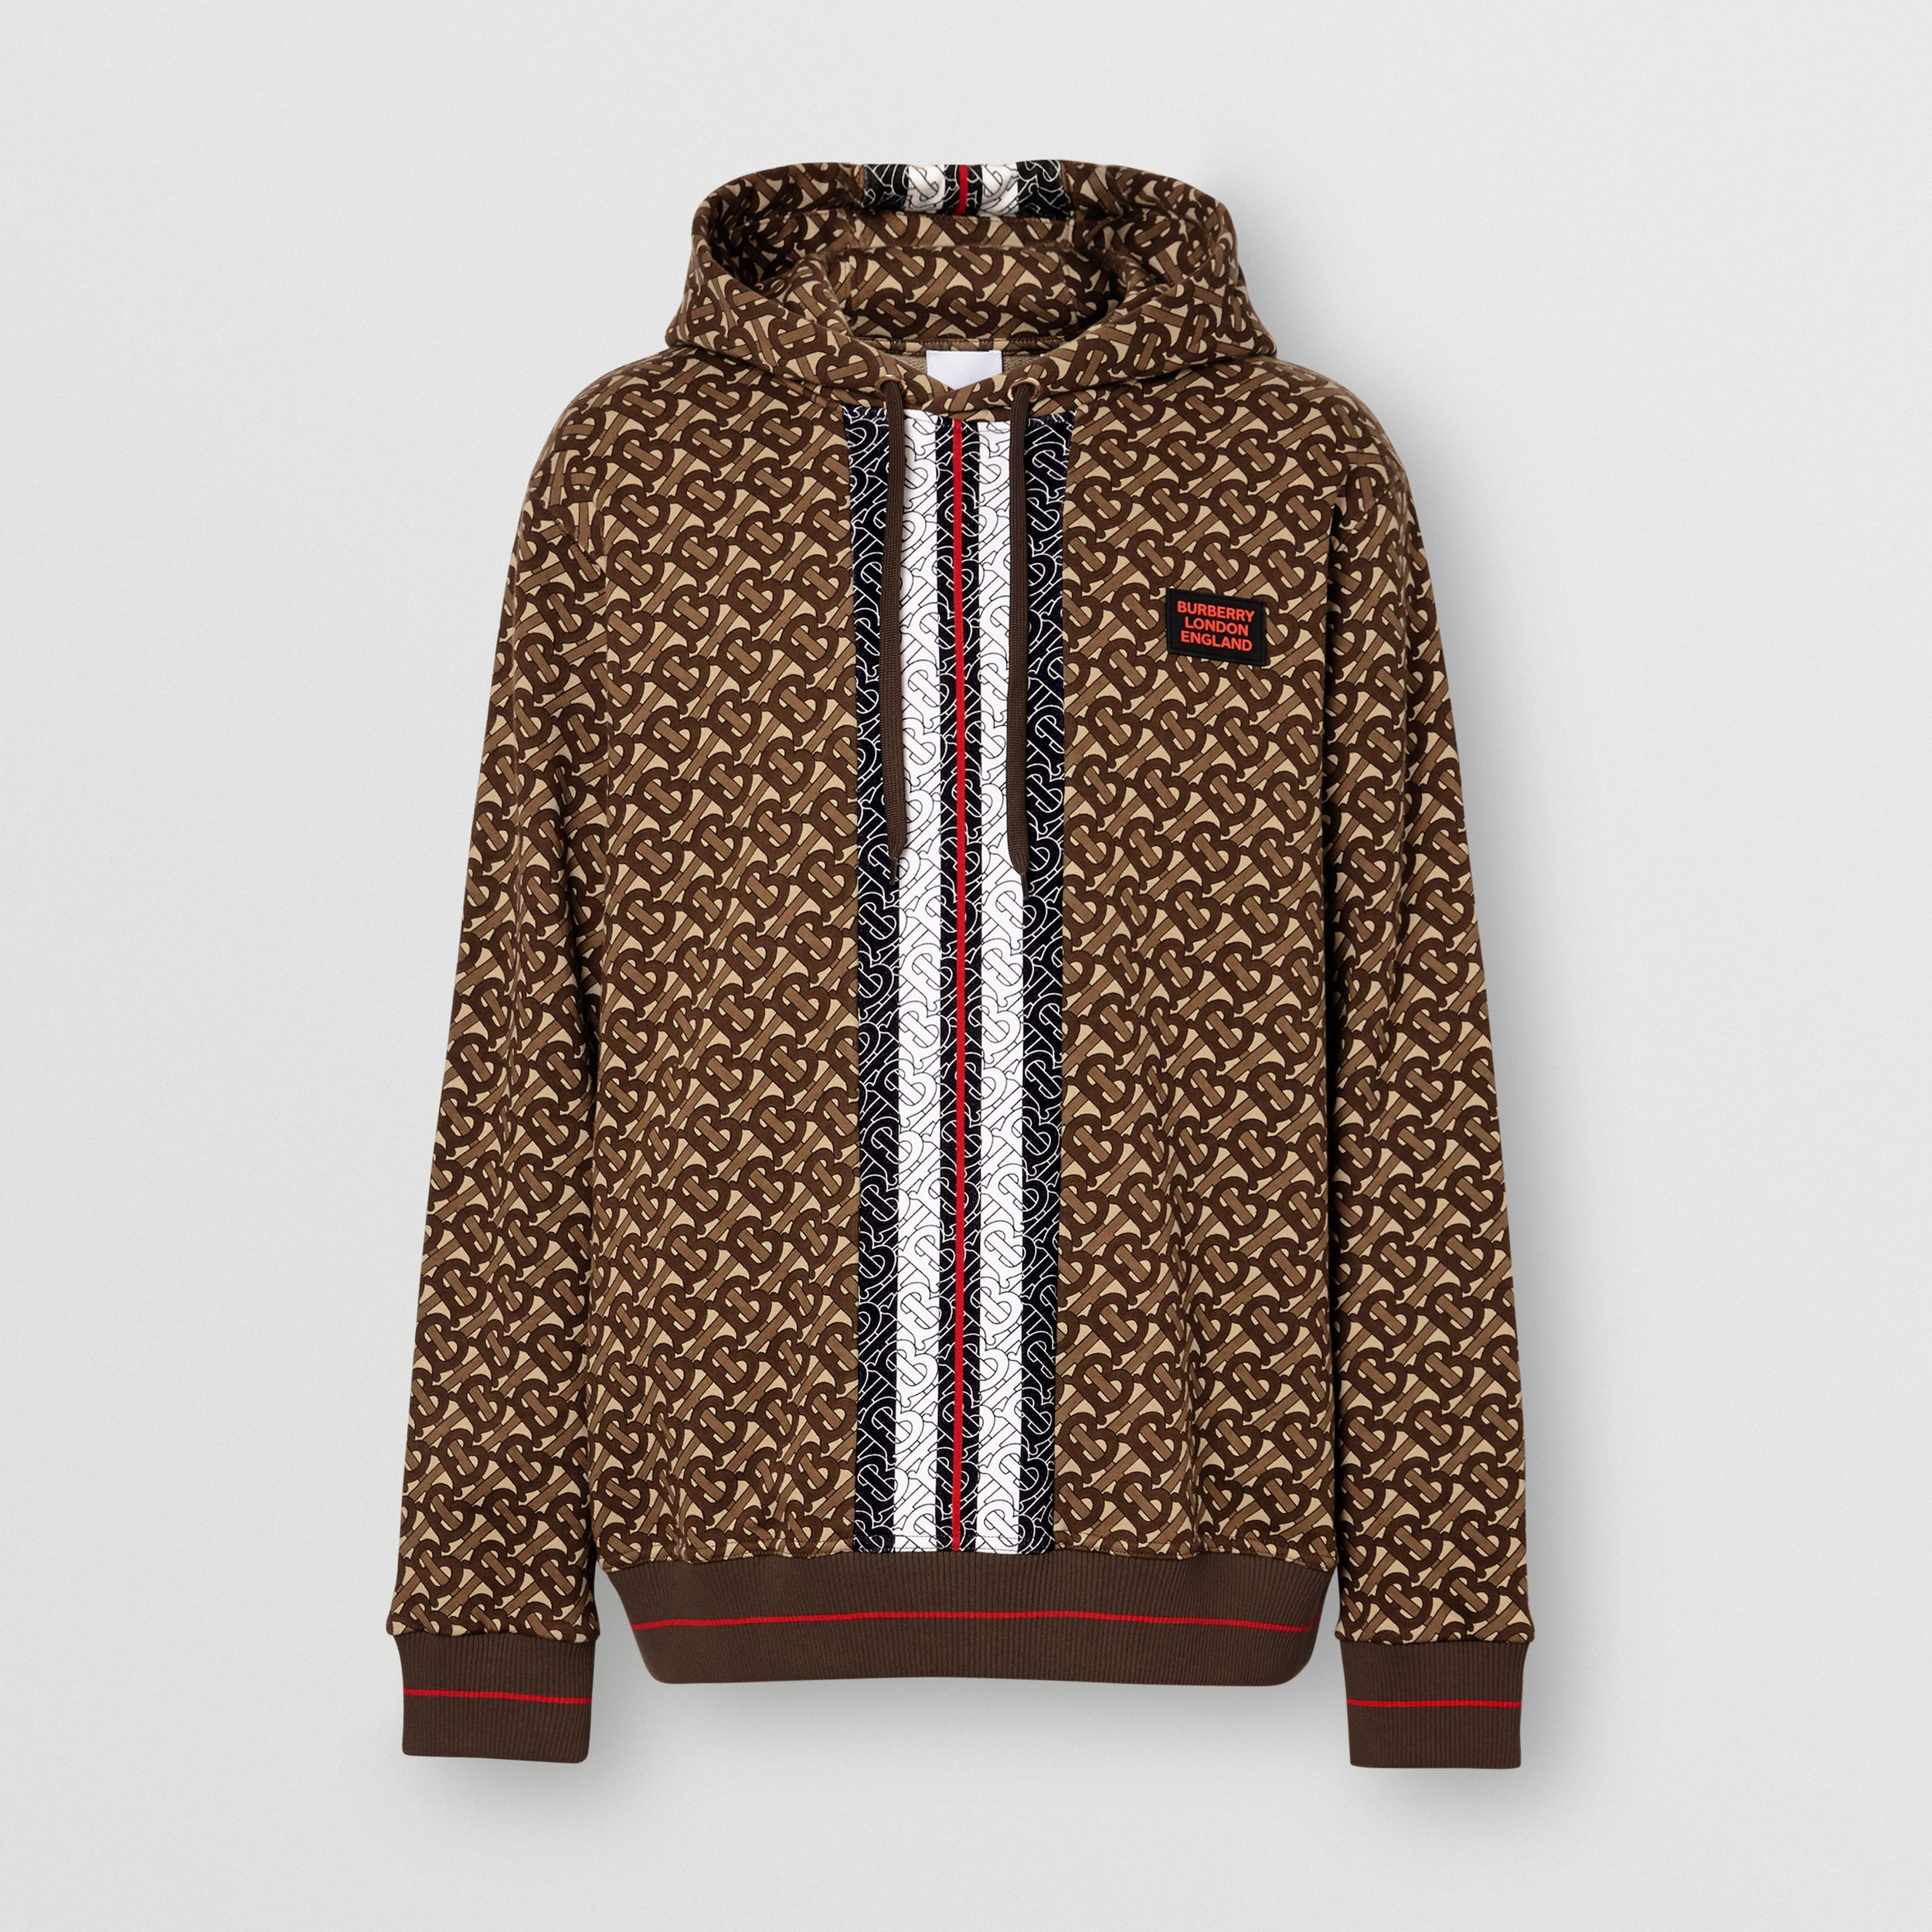 Monogram Stripe Print Cotton Hoodie in Bridle Brown - Men | Burberry Australia - 4